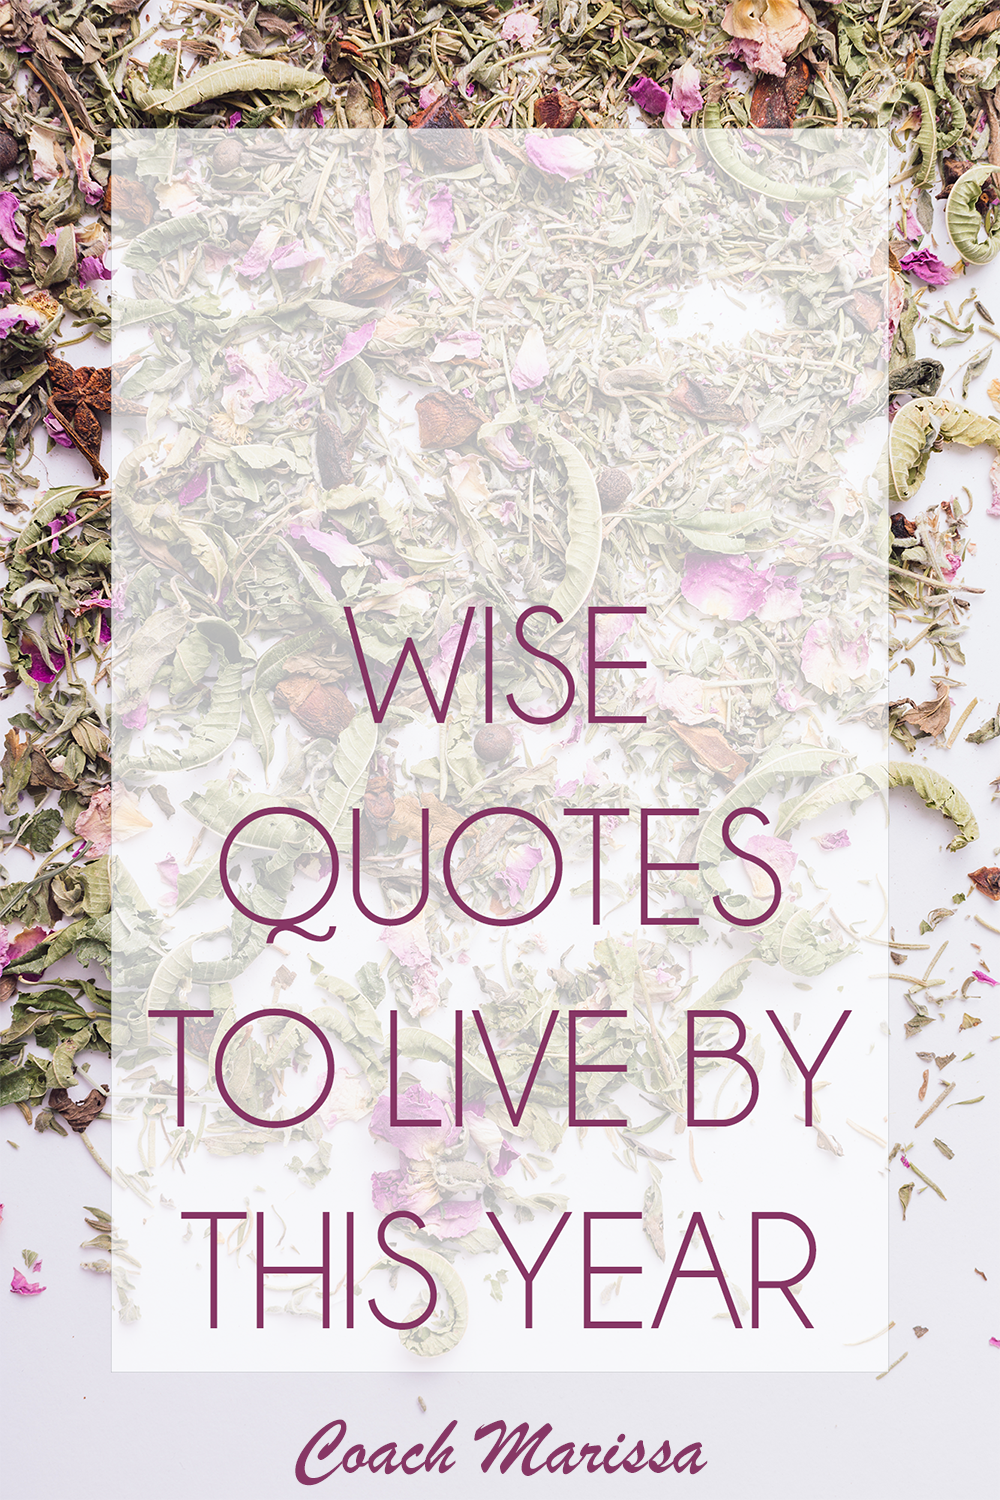 words of wisdom - inspiring quotes to live by this year